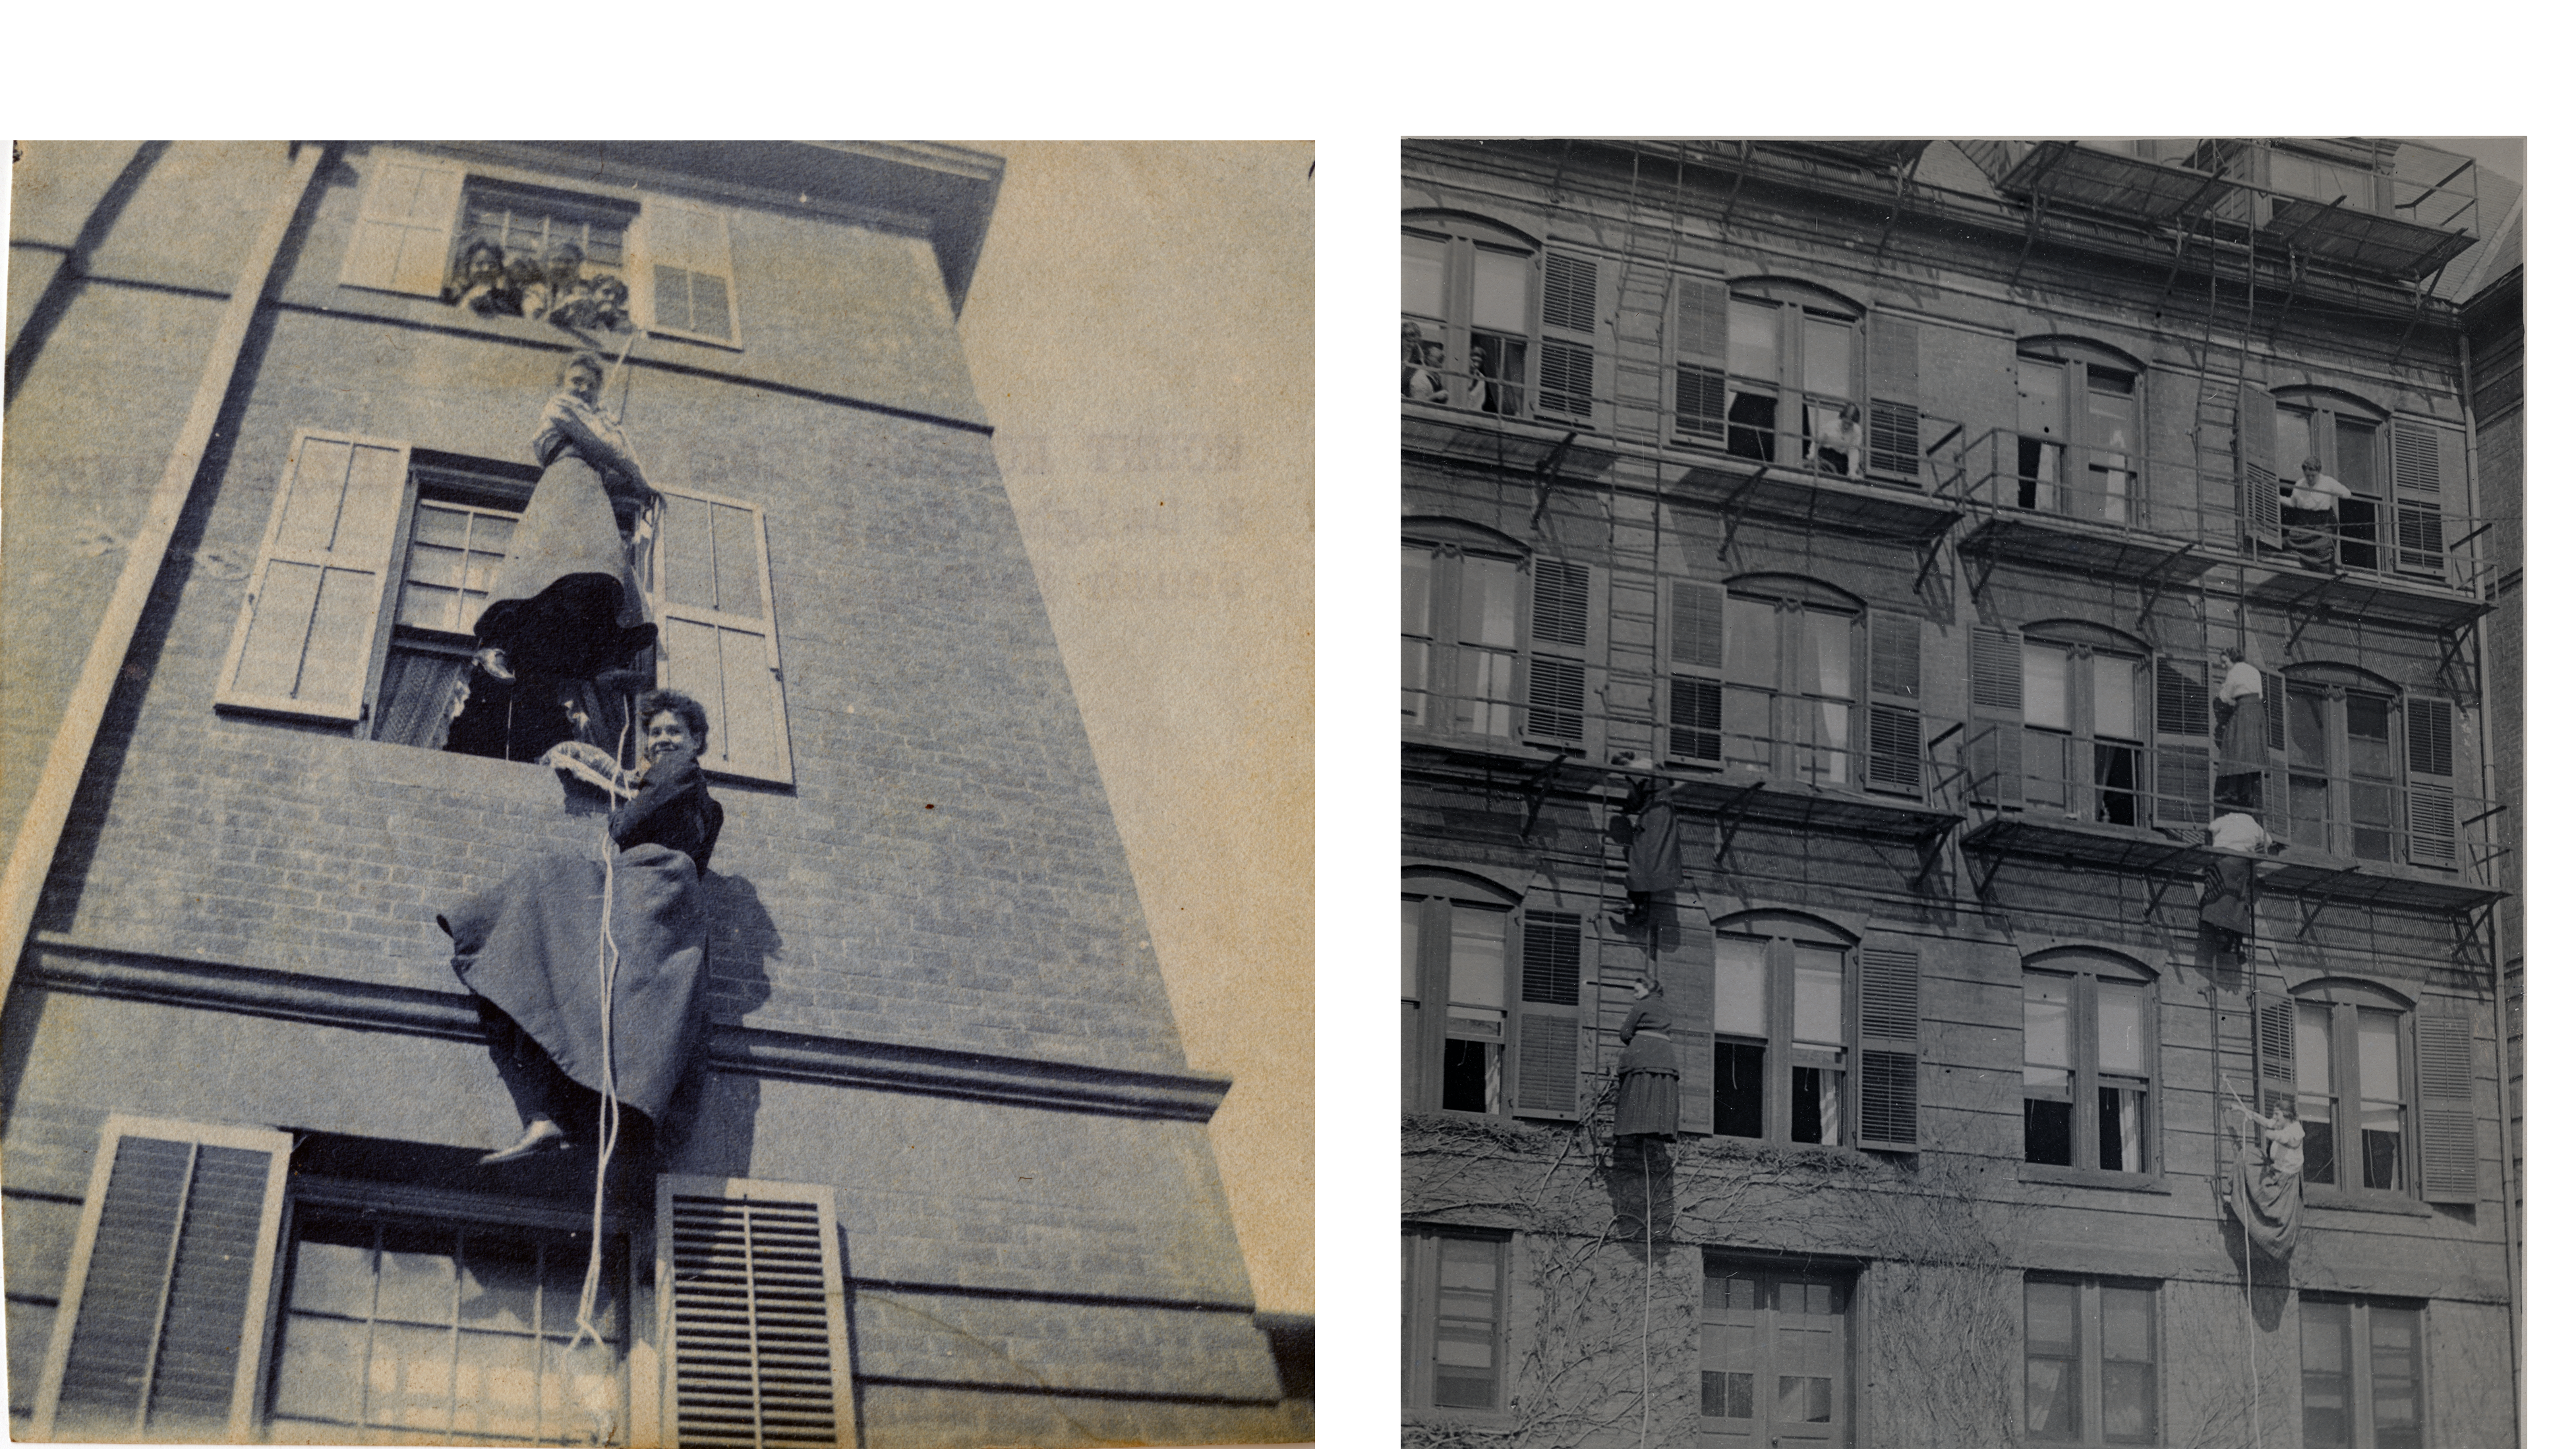 Students practice climbing out of residence halls windows during fire drills, ca. 1903 (left) and 1920 (right)